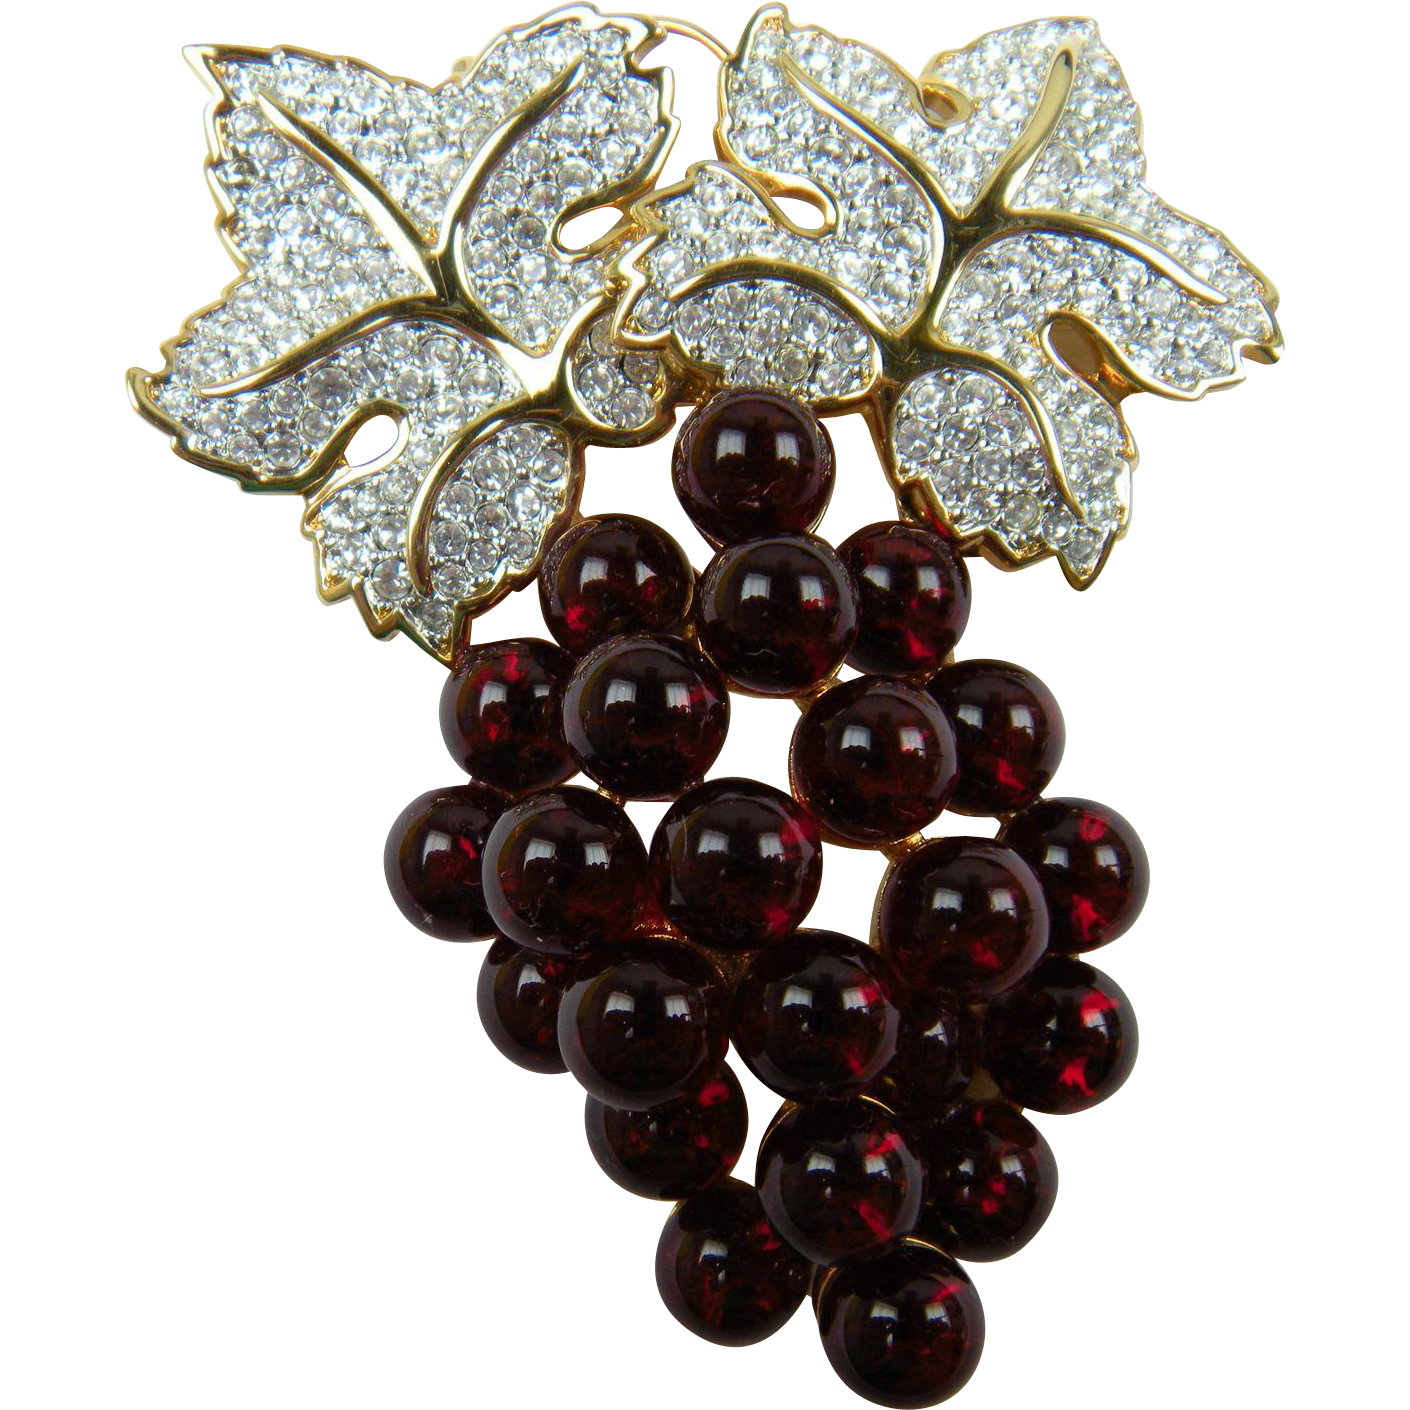 Huge Signed Swarovski (Swan Logo) Brooch with Glass Grapes and Pave' Rhinestones